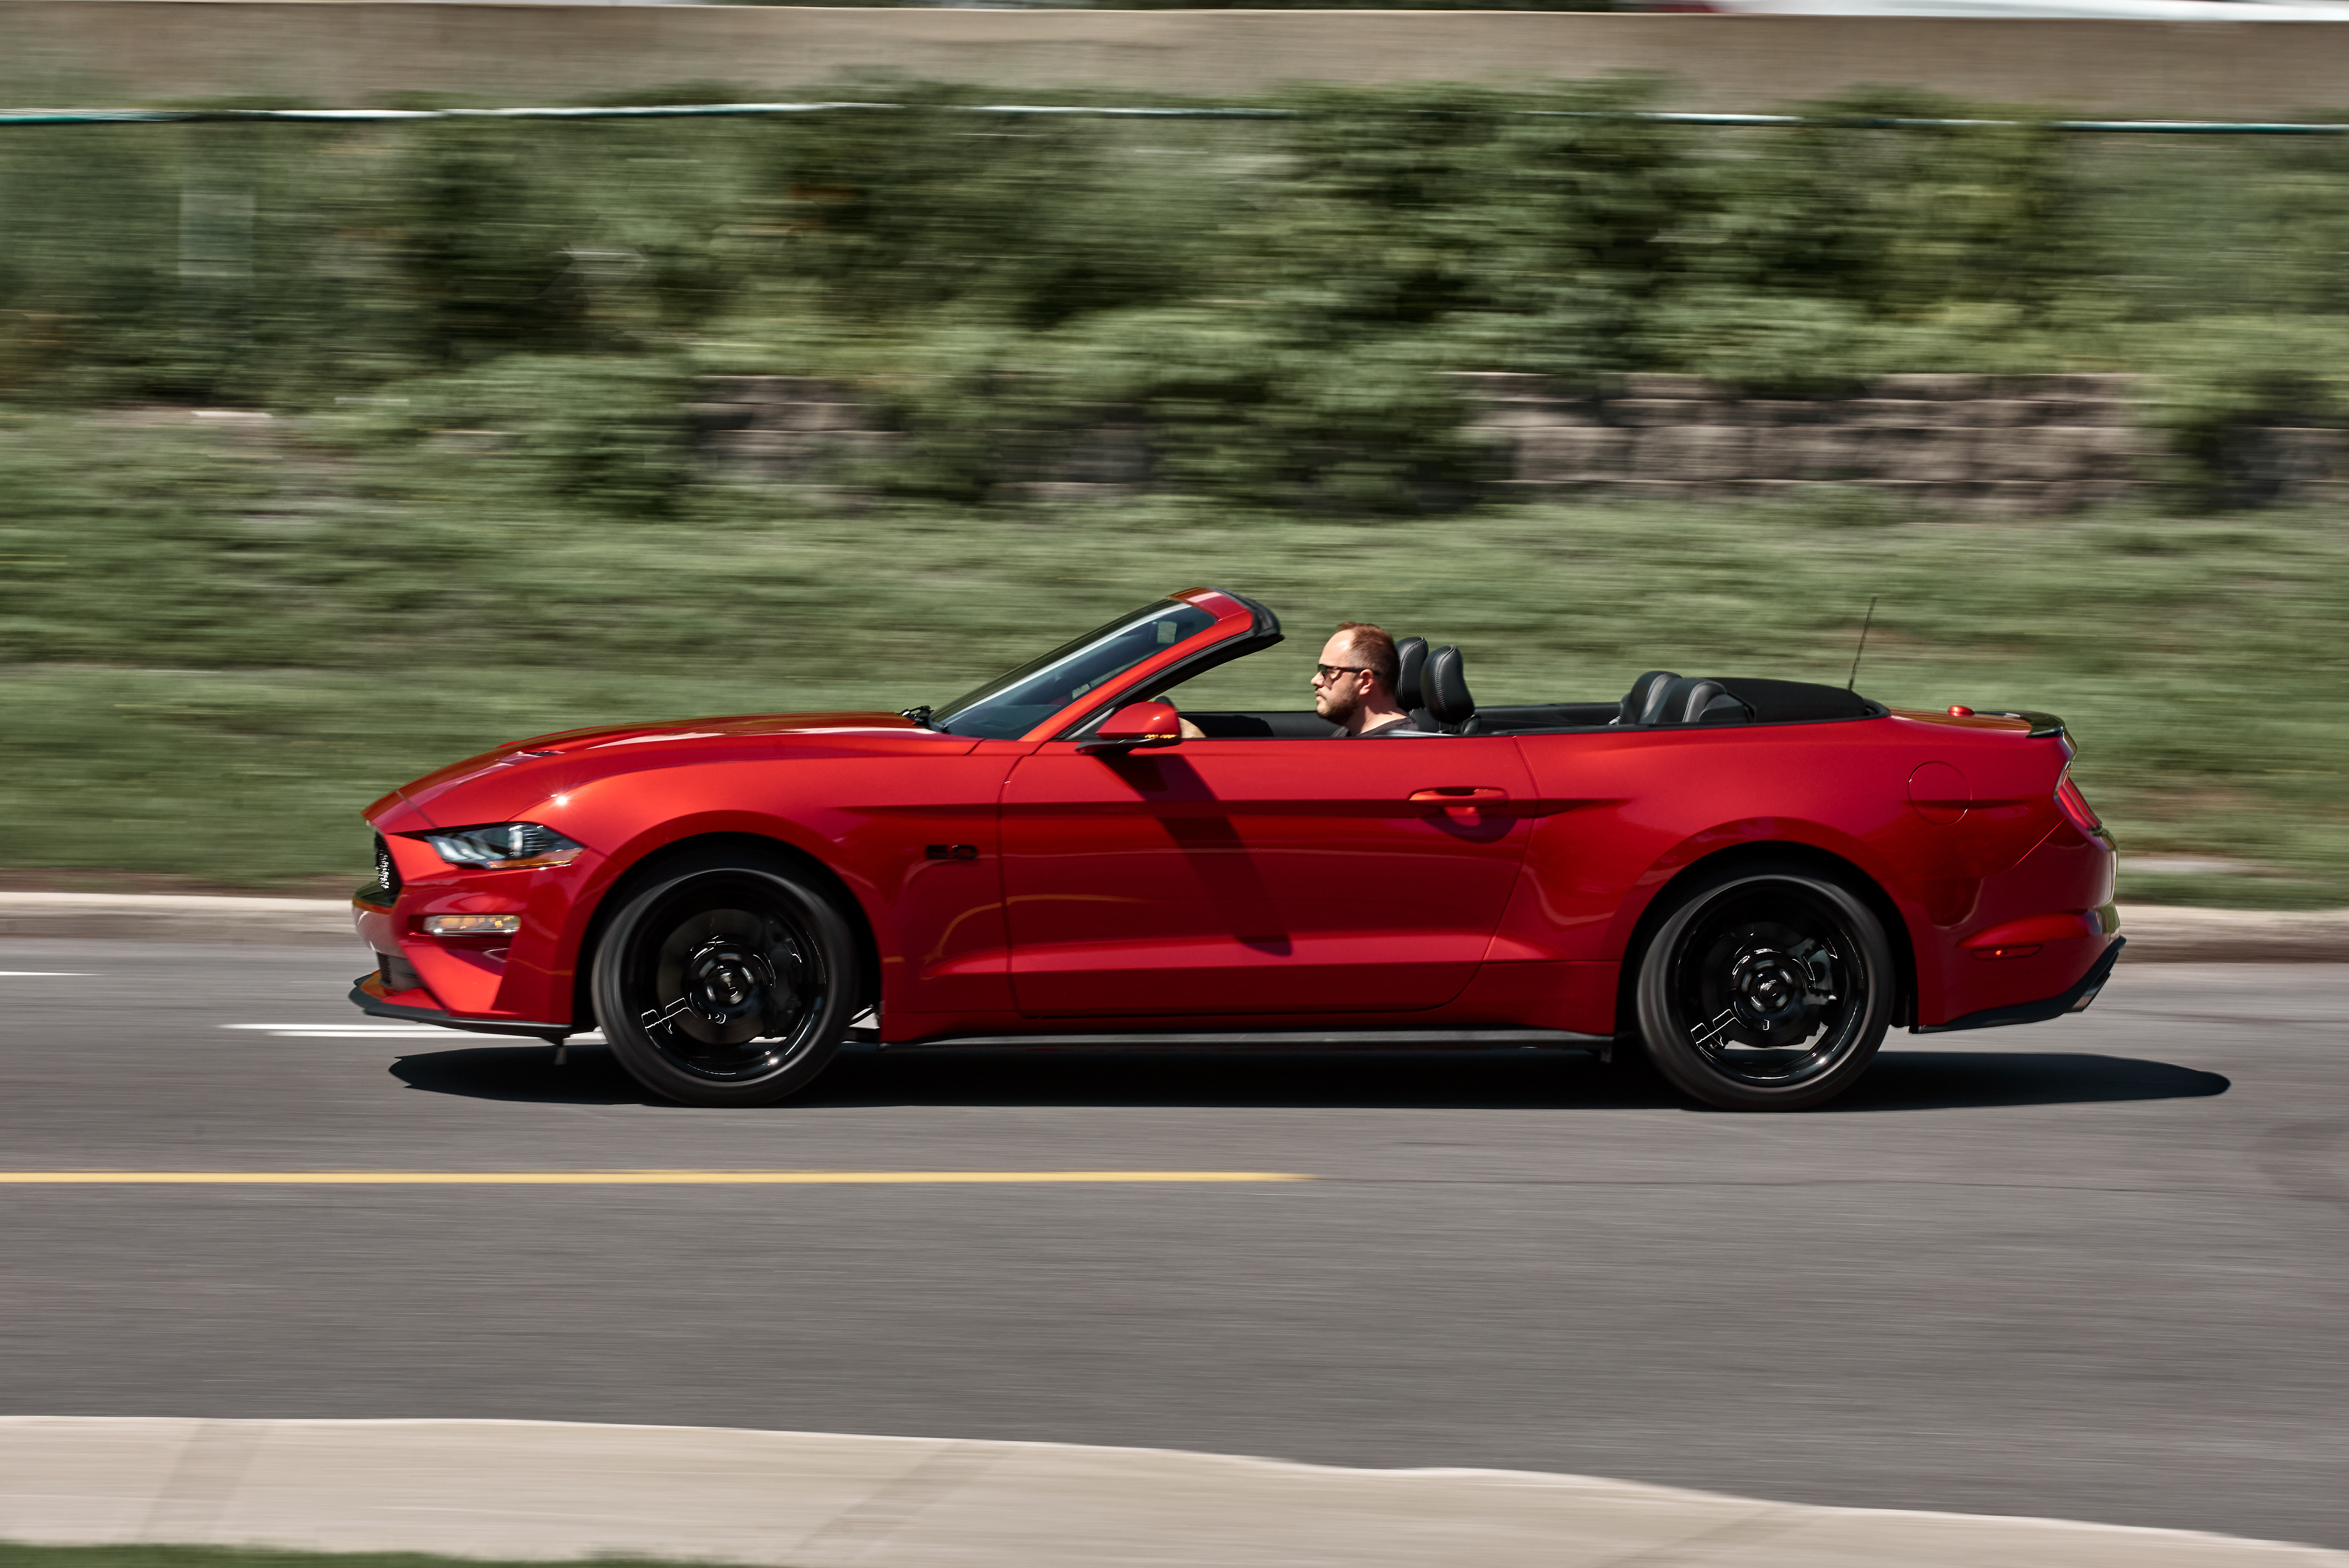 2020 Ford Mustang Gt Convertible Always Feels Like Summer